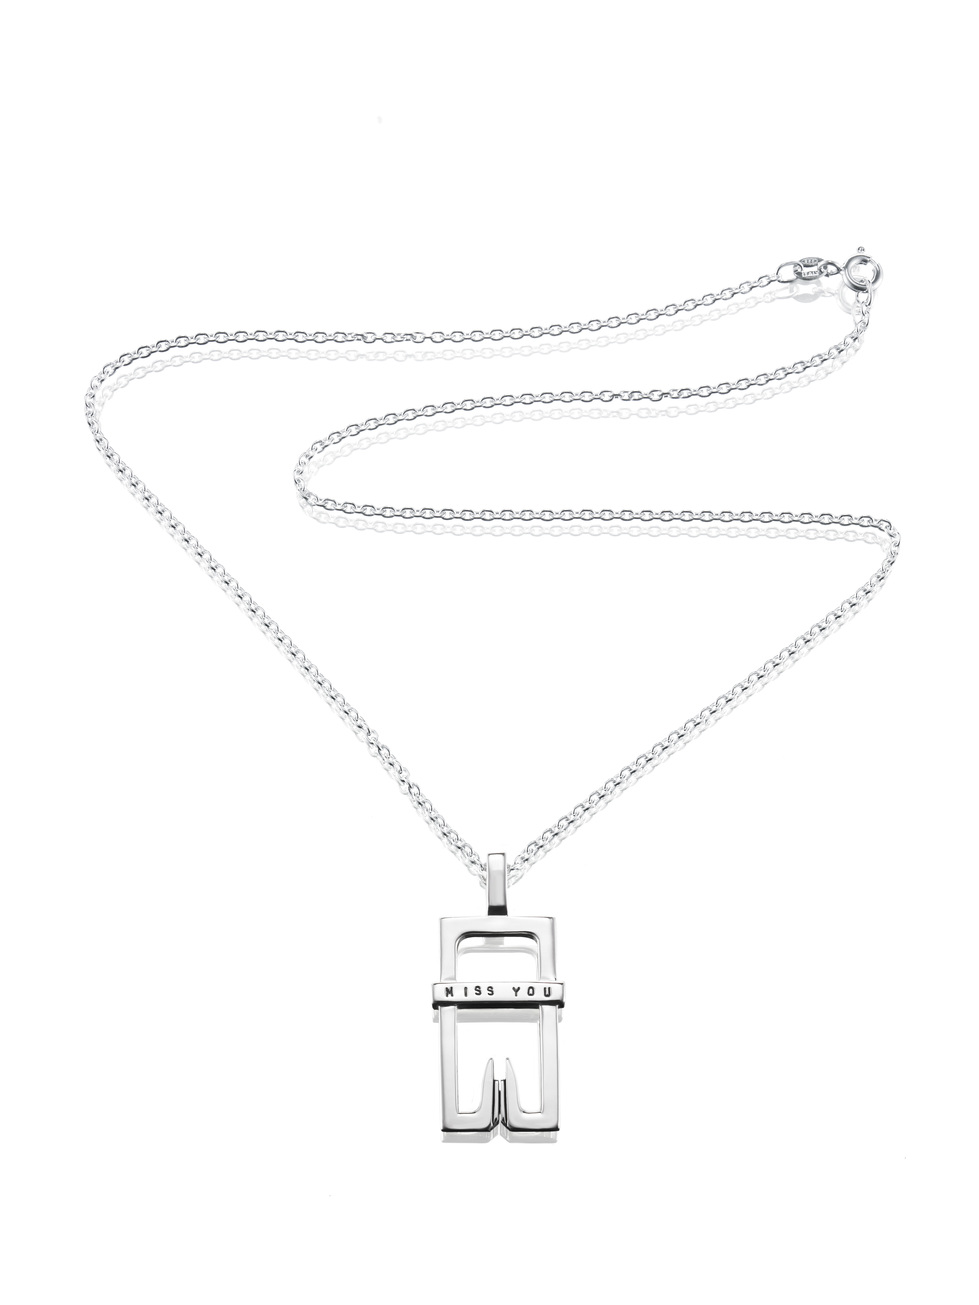 Miss You Pendant 11-100-00437(1)